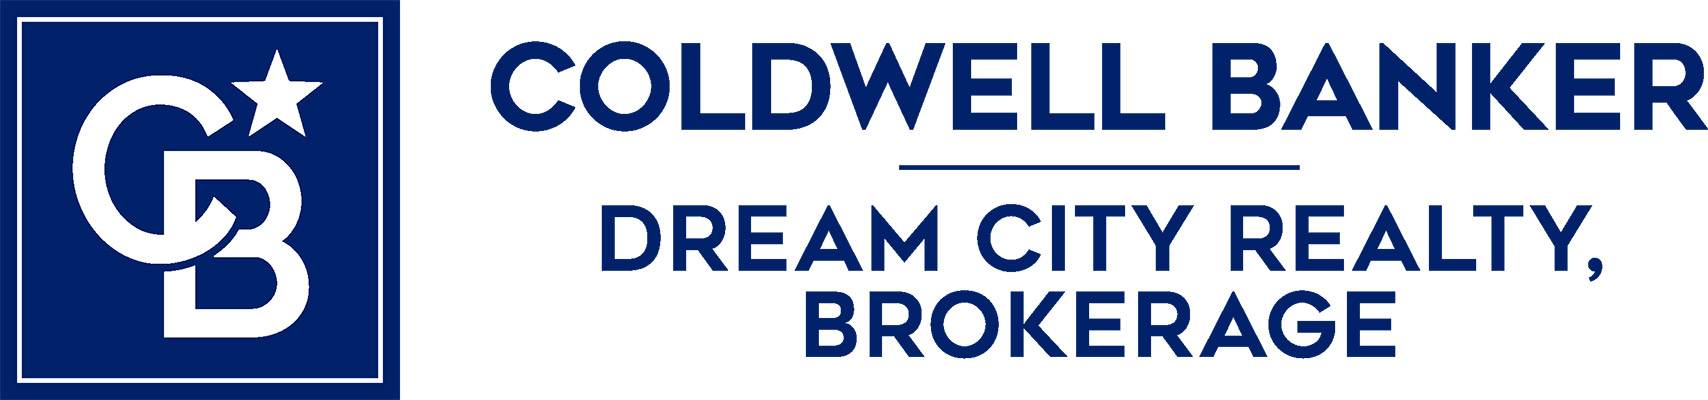 COLDWELL BANKER DREAM CITY REALTY